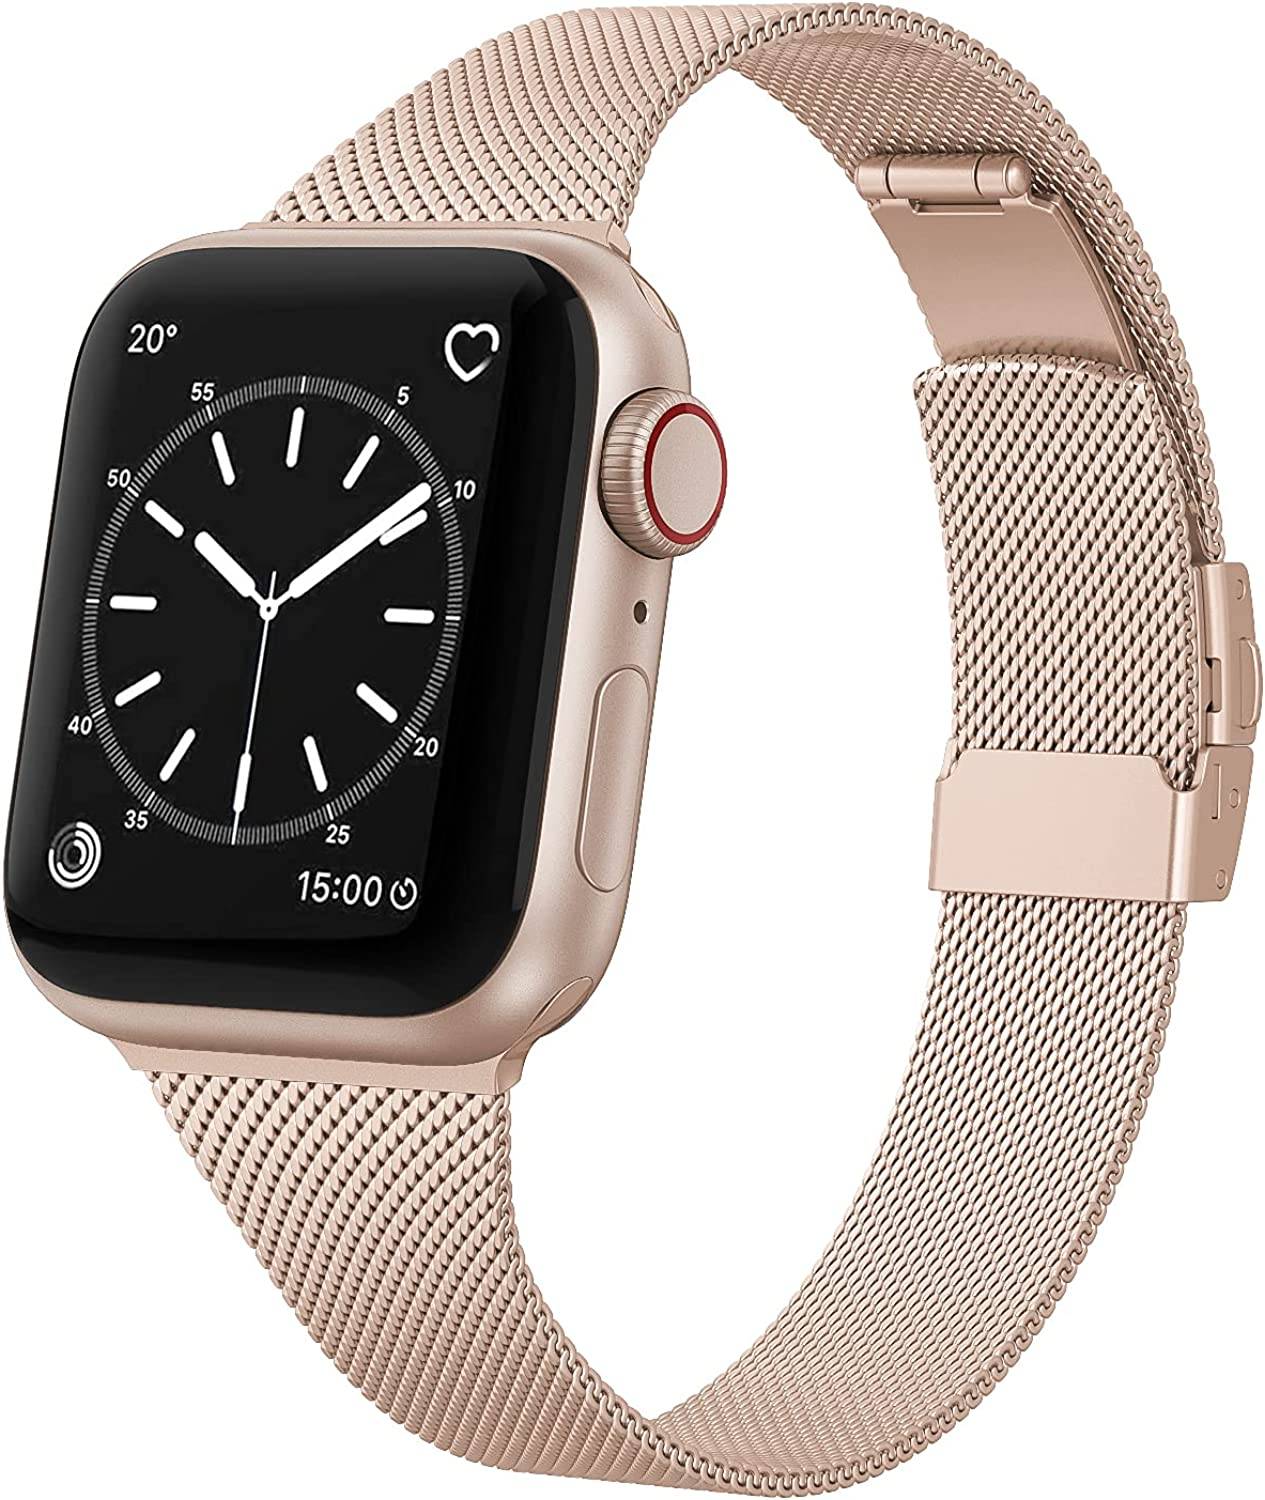 EDIMENS Stainless Steel Metal Bands Compatible with Apple Watch 38mm 40mm Band, Small Soft Thin Narrow Replacement Band for iWatch Series 6 5 4 3 2 1 SE Sports Edition Women, Black, Silver, Rose Gold